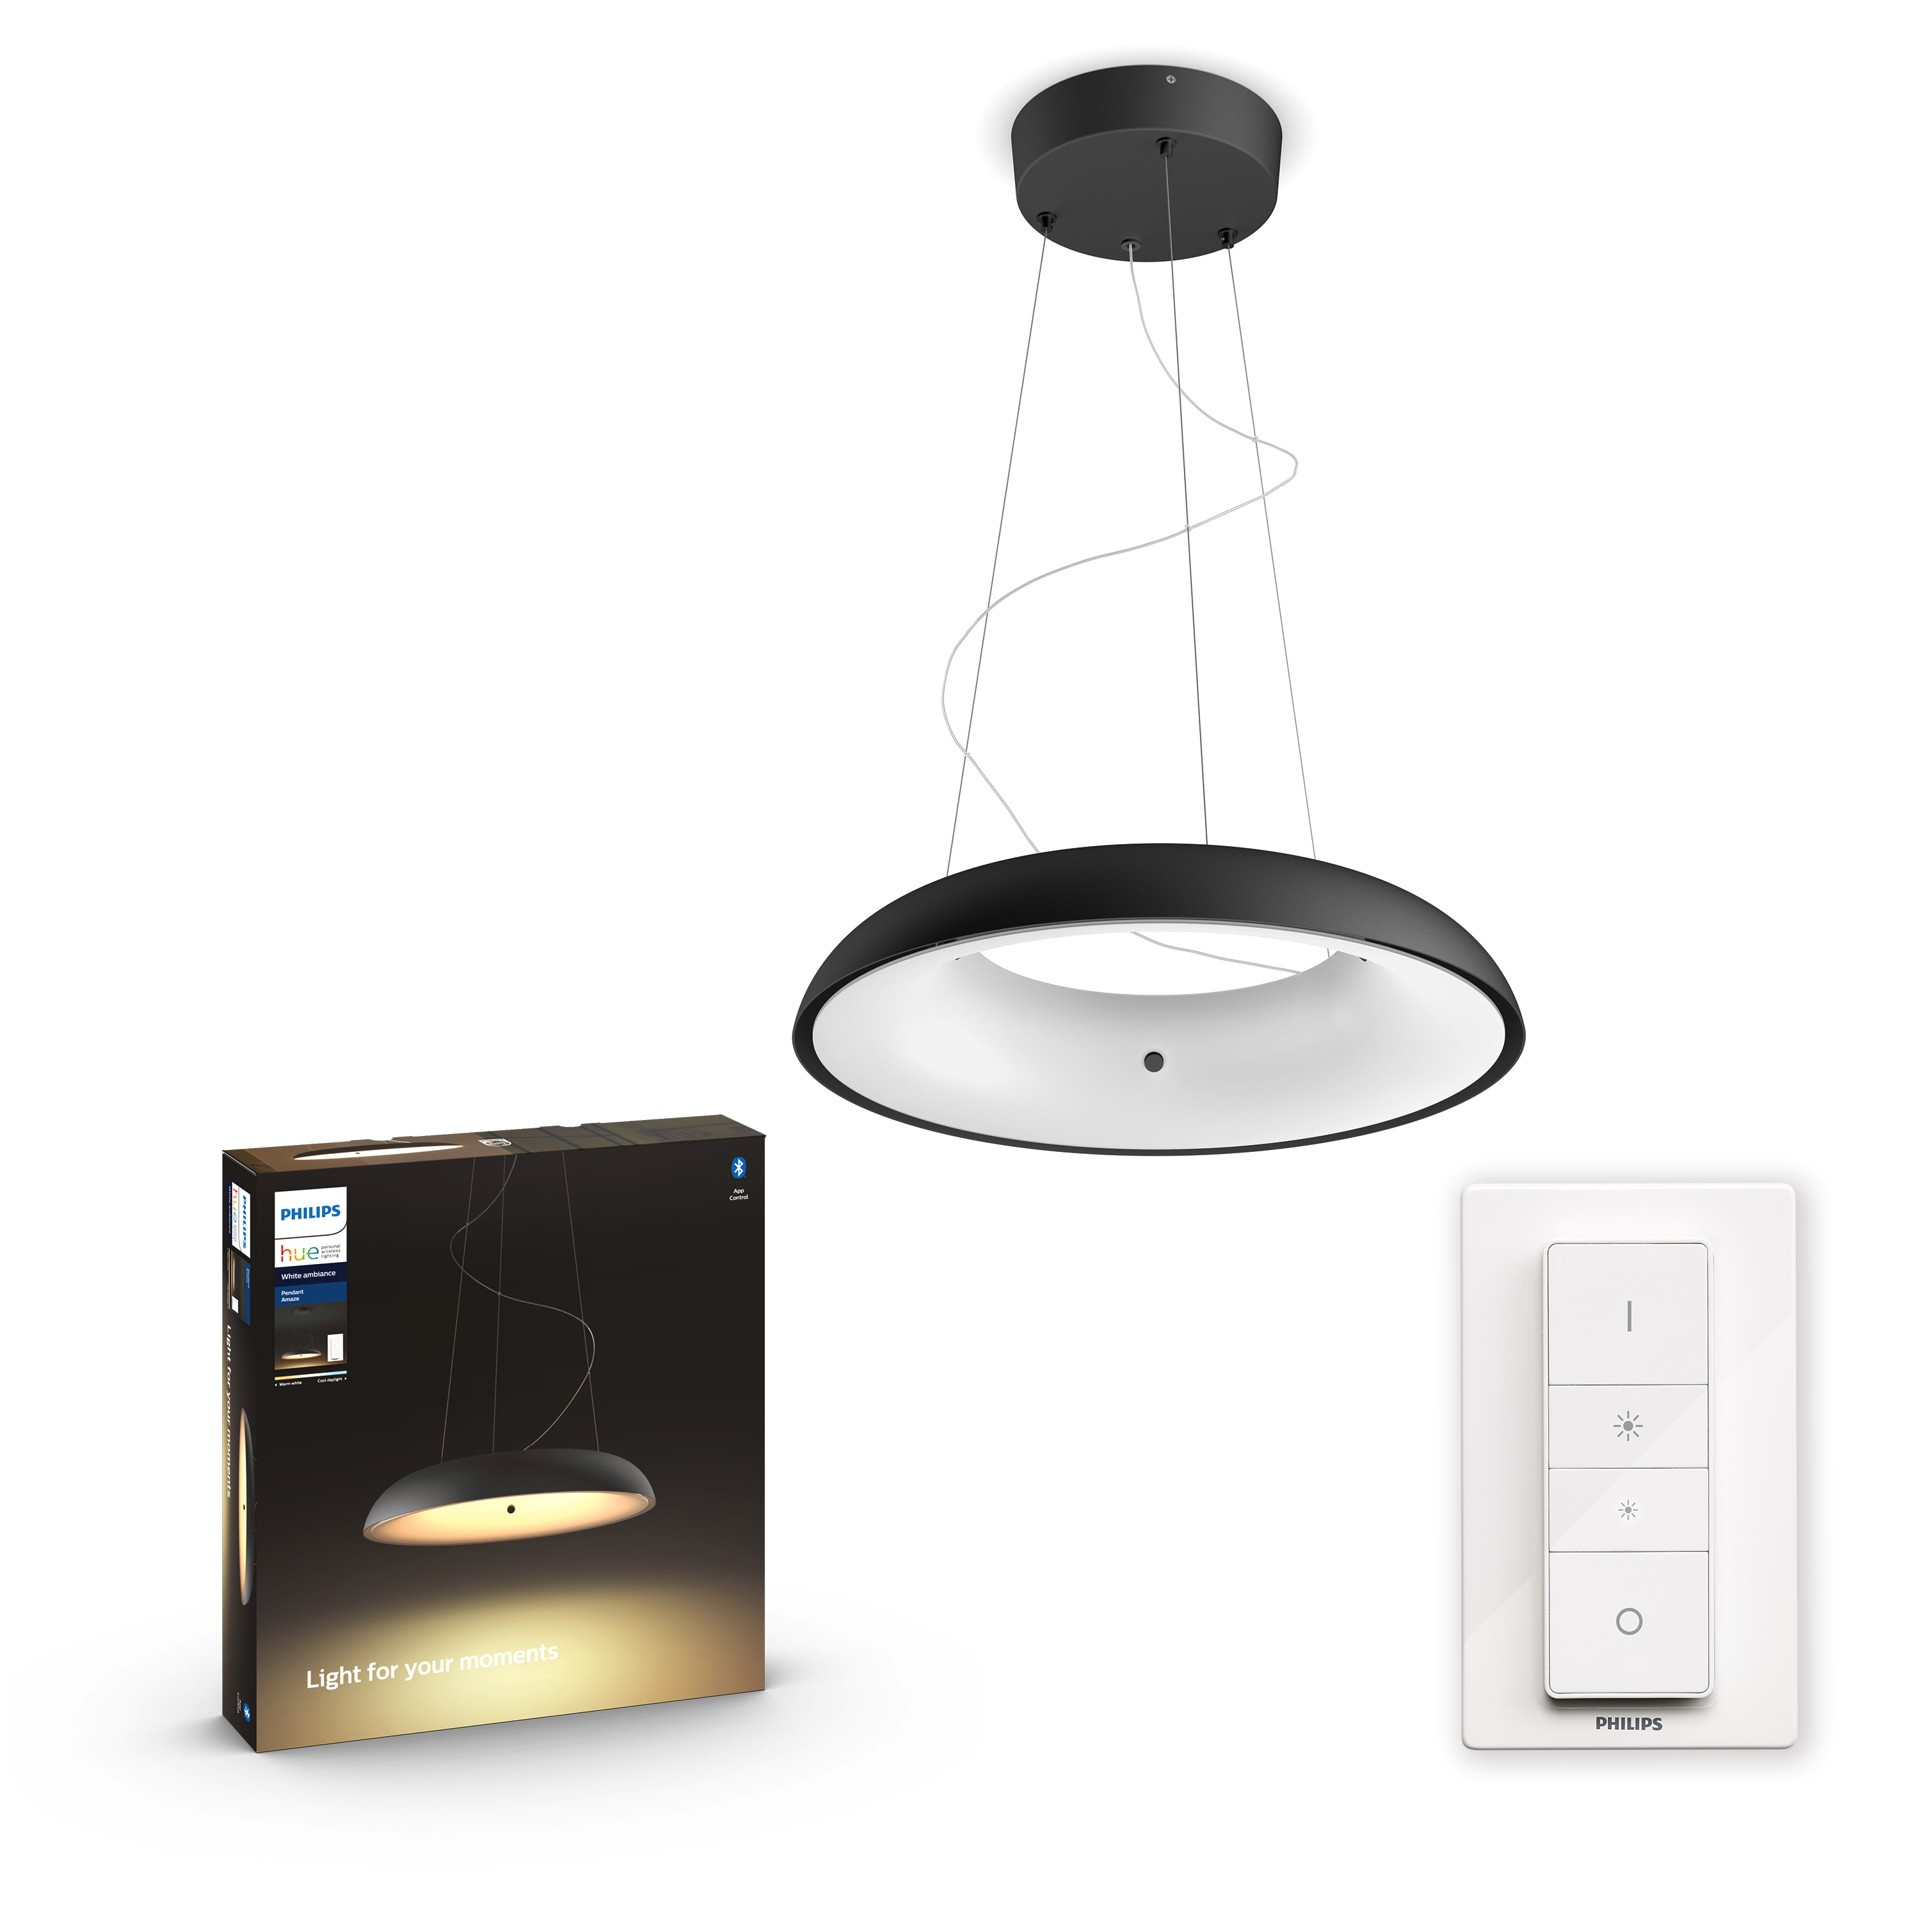 Philips Hue Amaze Hue pendant black 1x39W 24V White Ambiance Bluetooth Dimmer Included